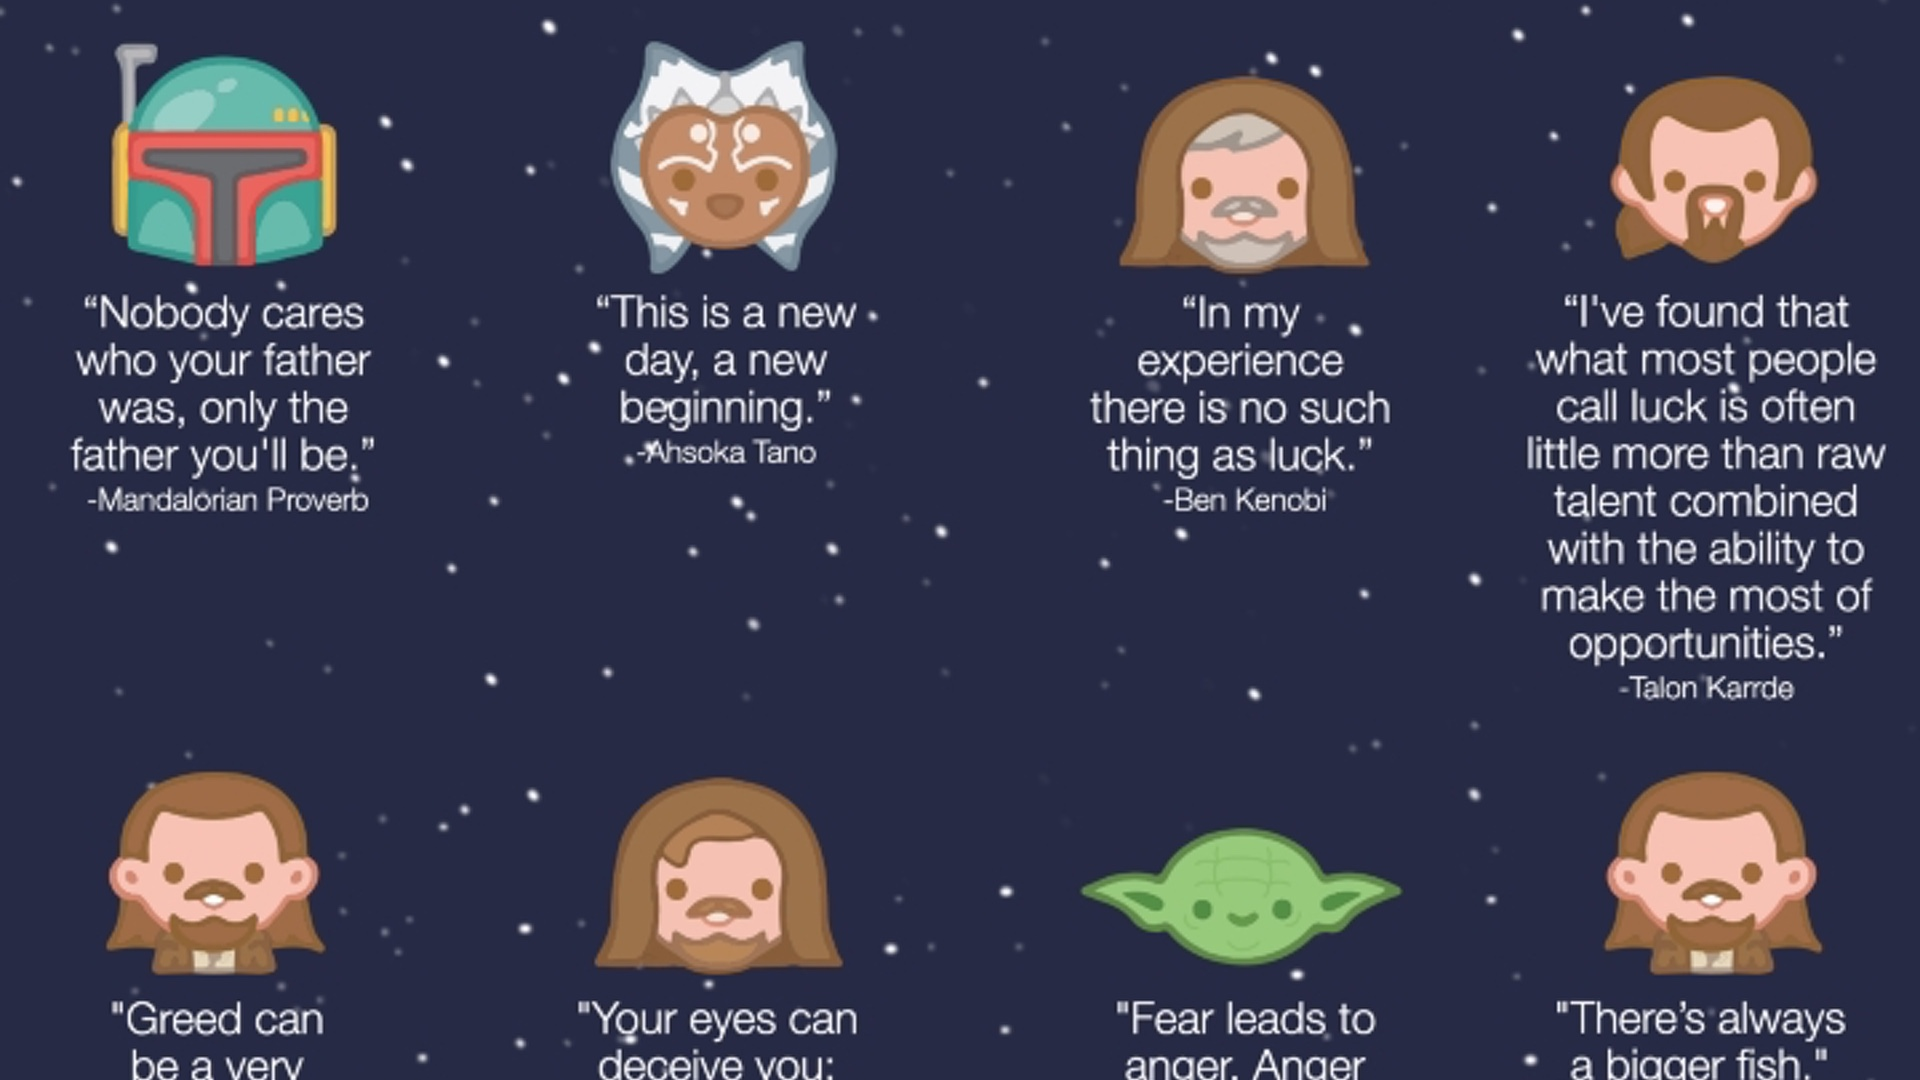 28 Words Of Wisdom From Star Wars Quotes Infographic Geektyrant